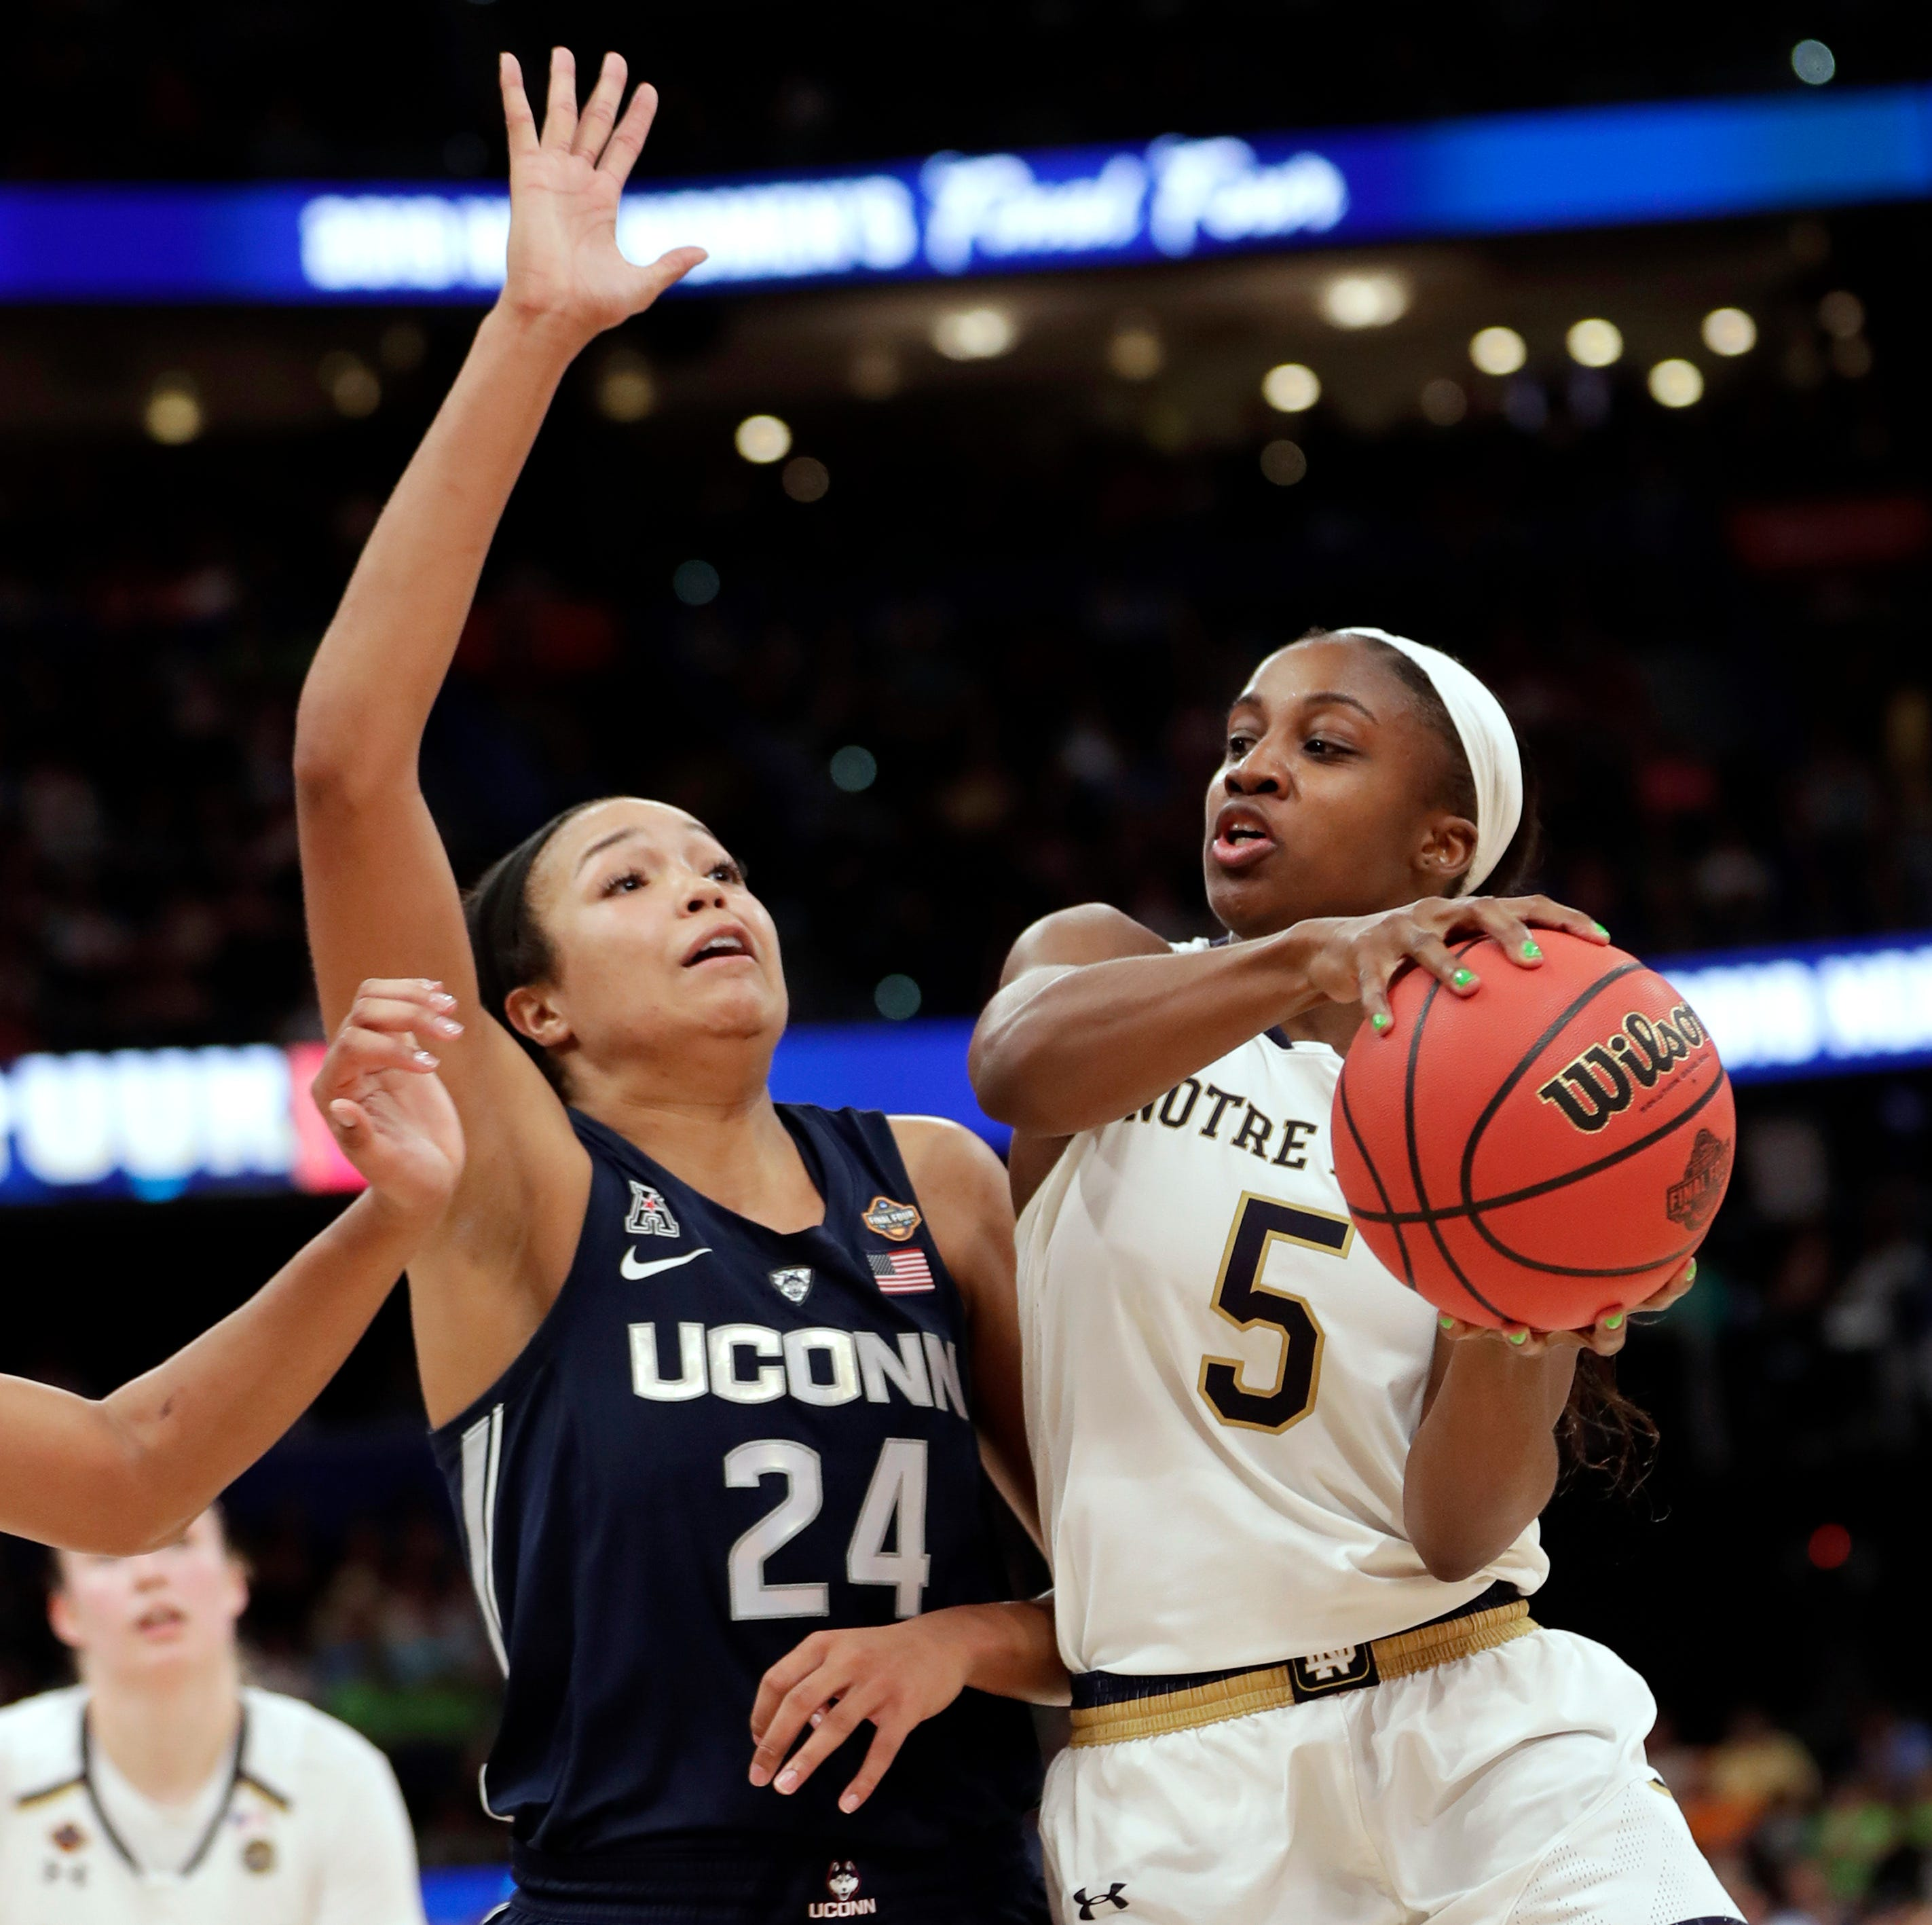 Notre Dame's Jackie Young says she will enter WNBA Draft